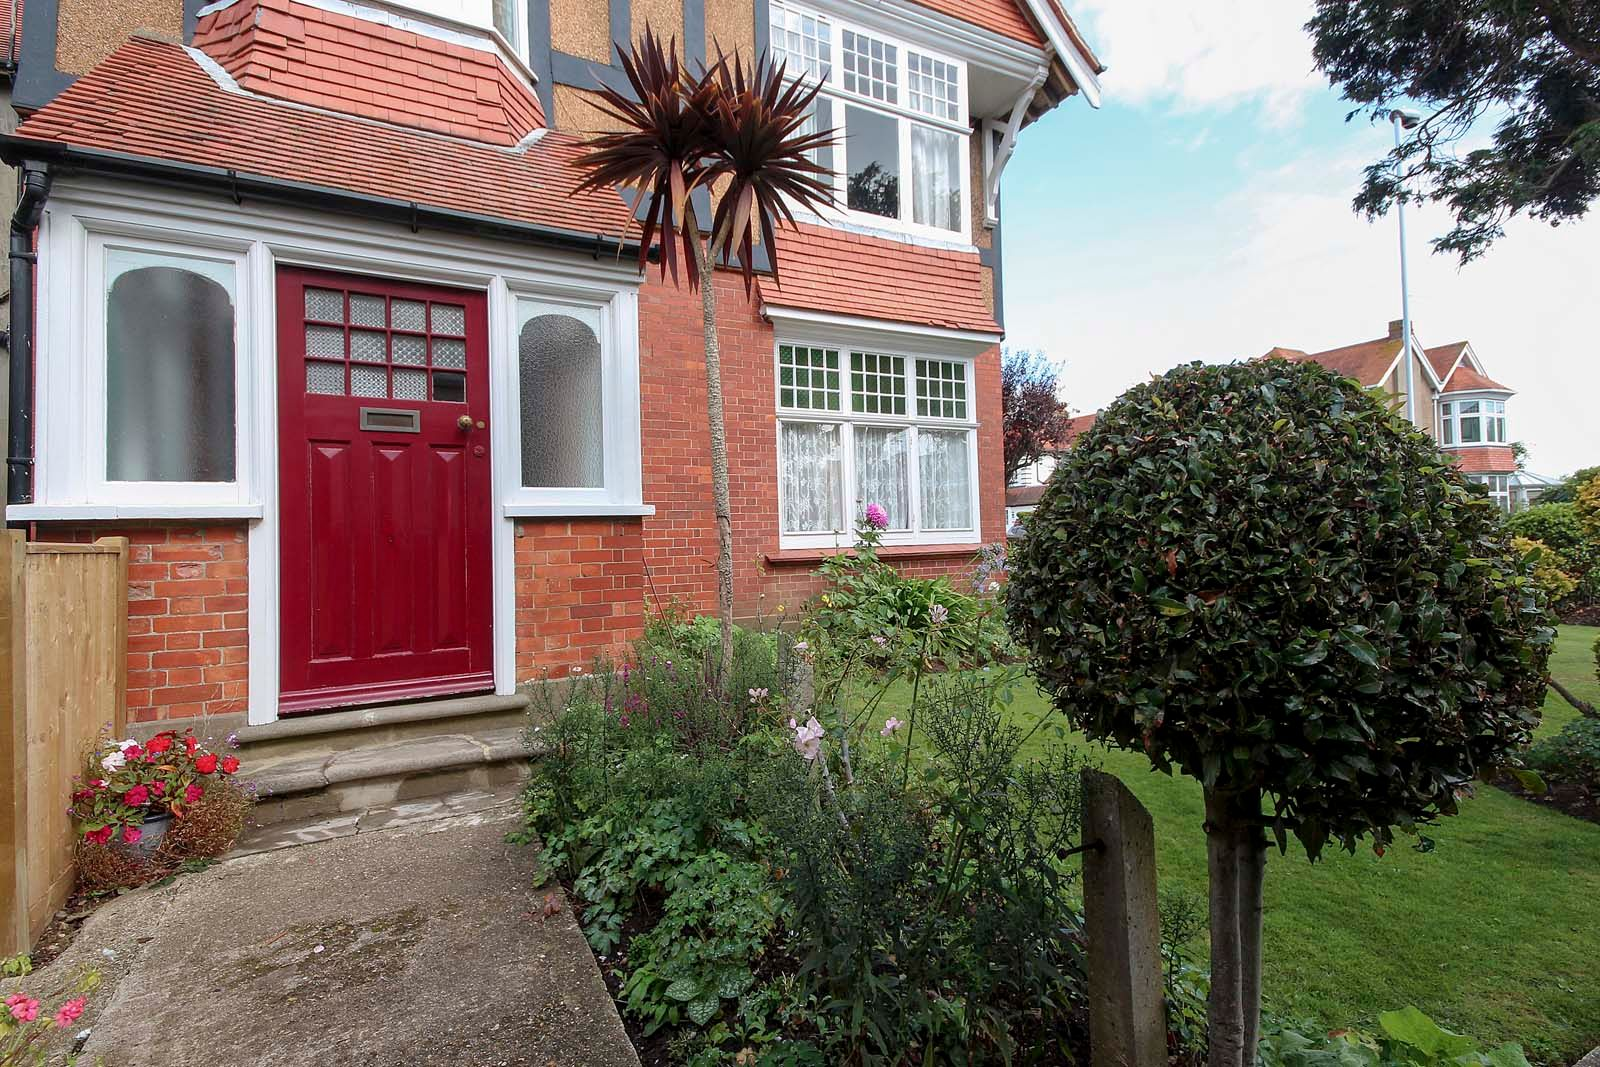 2 bed Apartment to rent in Worthing - Front door (Property Image 6)